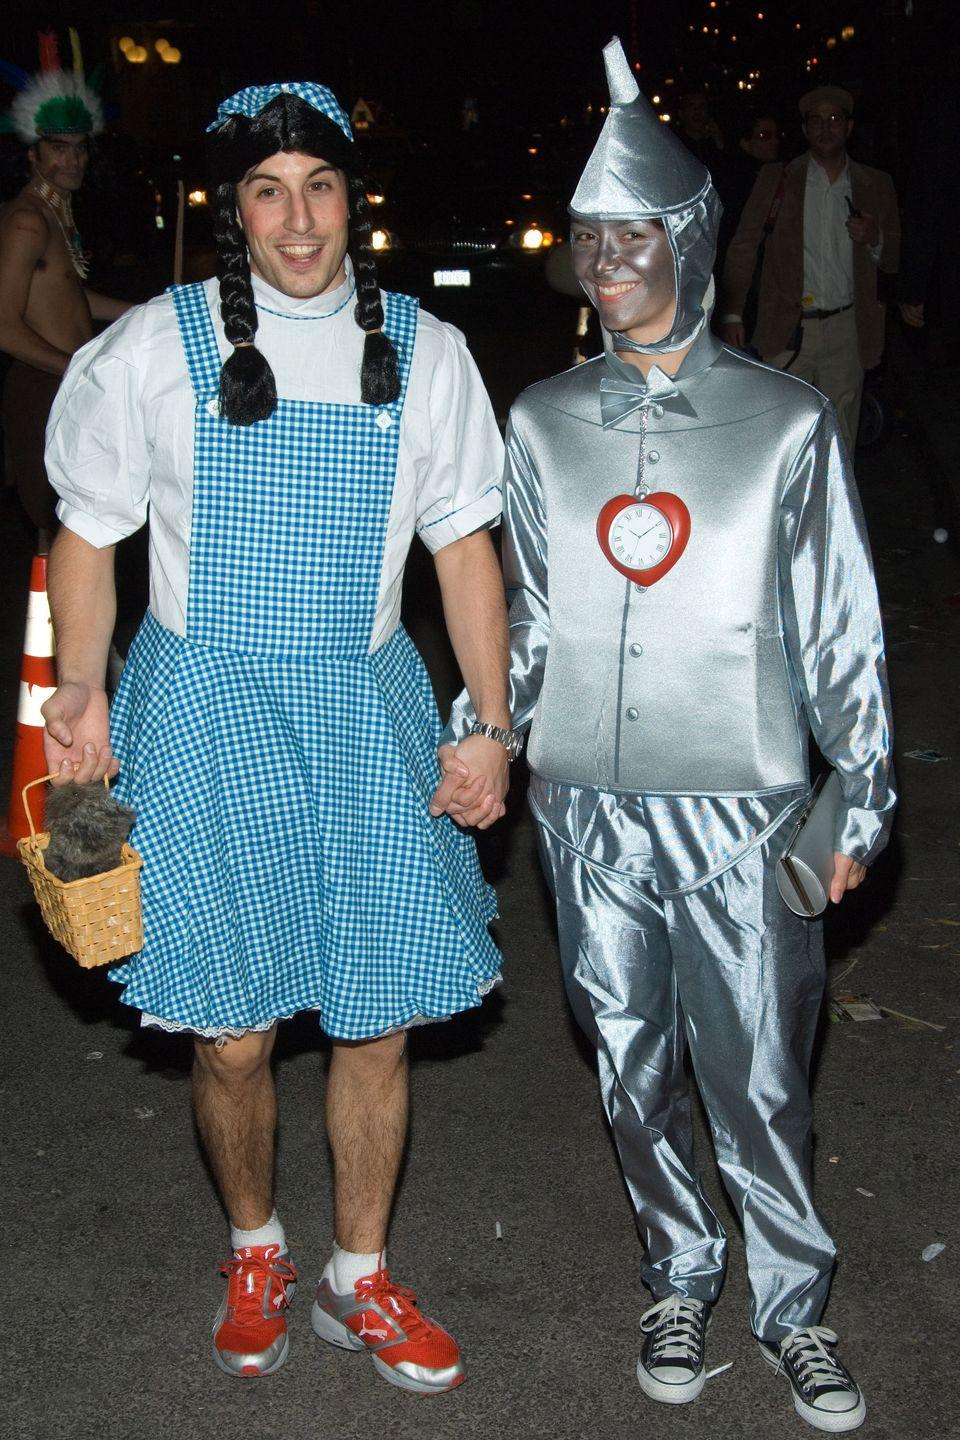 <p>The comedian flipped this common costume on its head by dressing up in the iconic blue gingham dress himself. Please note Toto in his basket.</p>